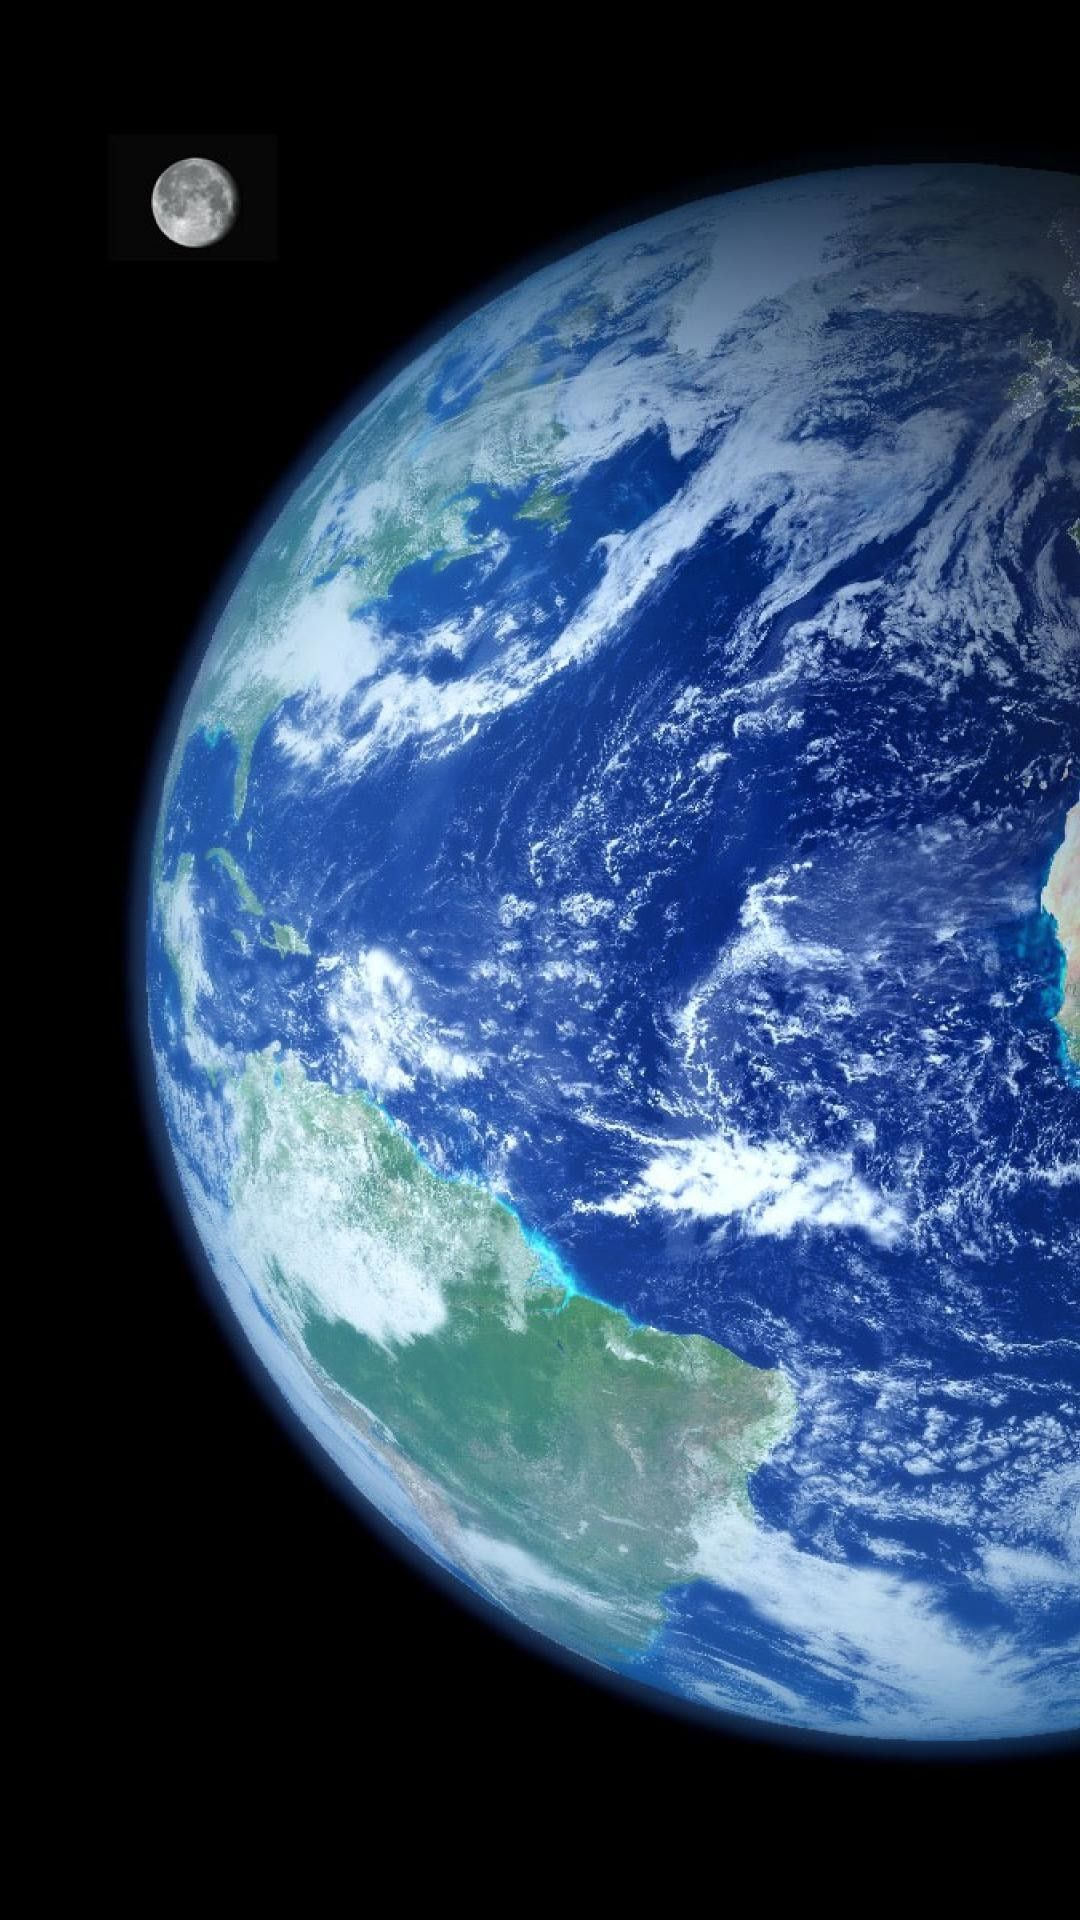 Iphone Earth Wallpapers Top Free Iphone Earth Backgrounds Wallpaperaccess